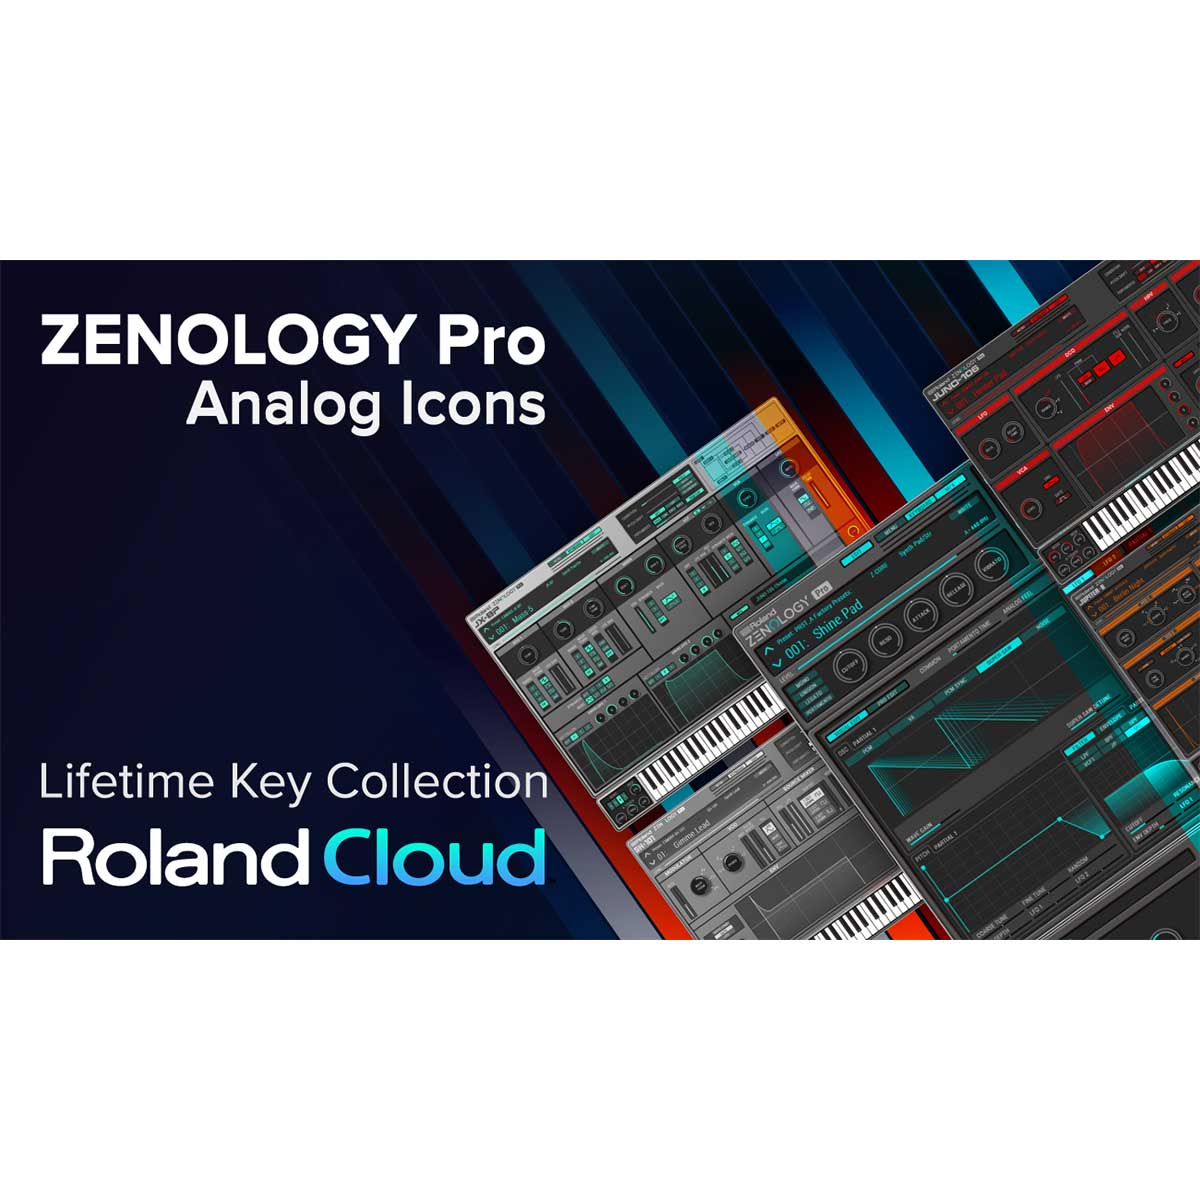 Roland Cloud Zenology Pro Analogue Icons Bundle